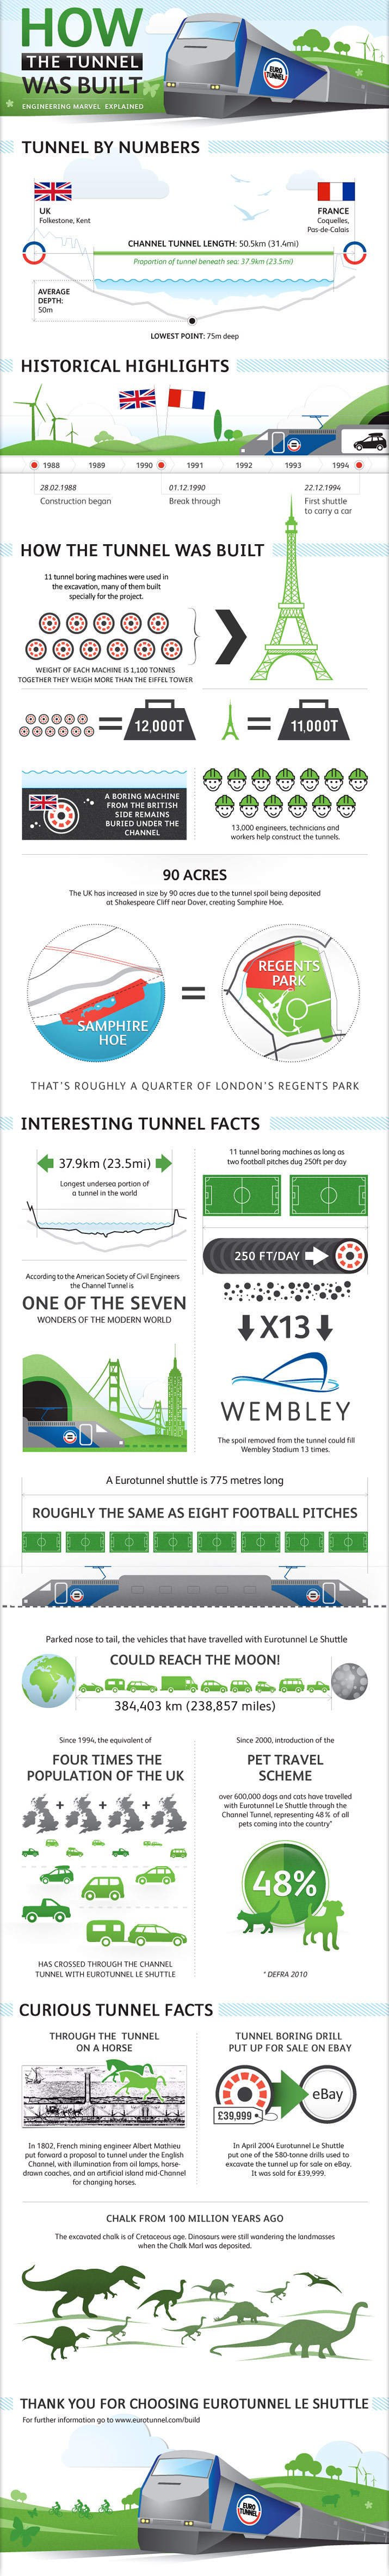 eurotunnel project